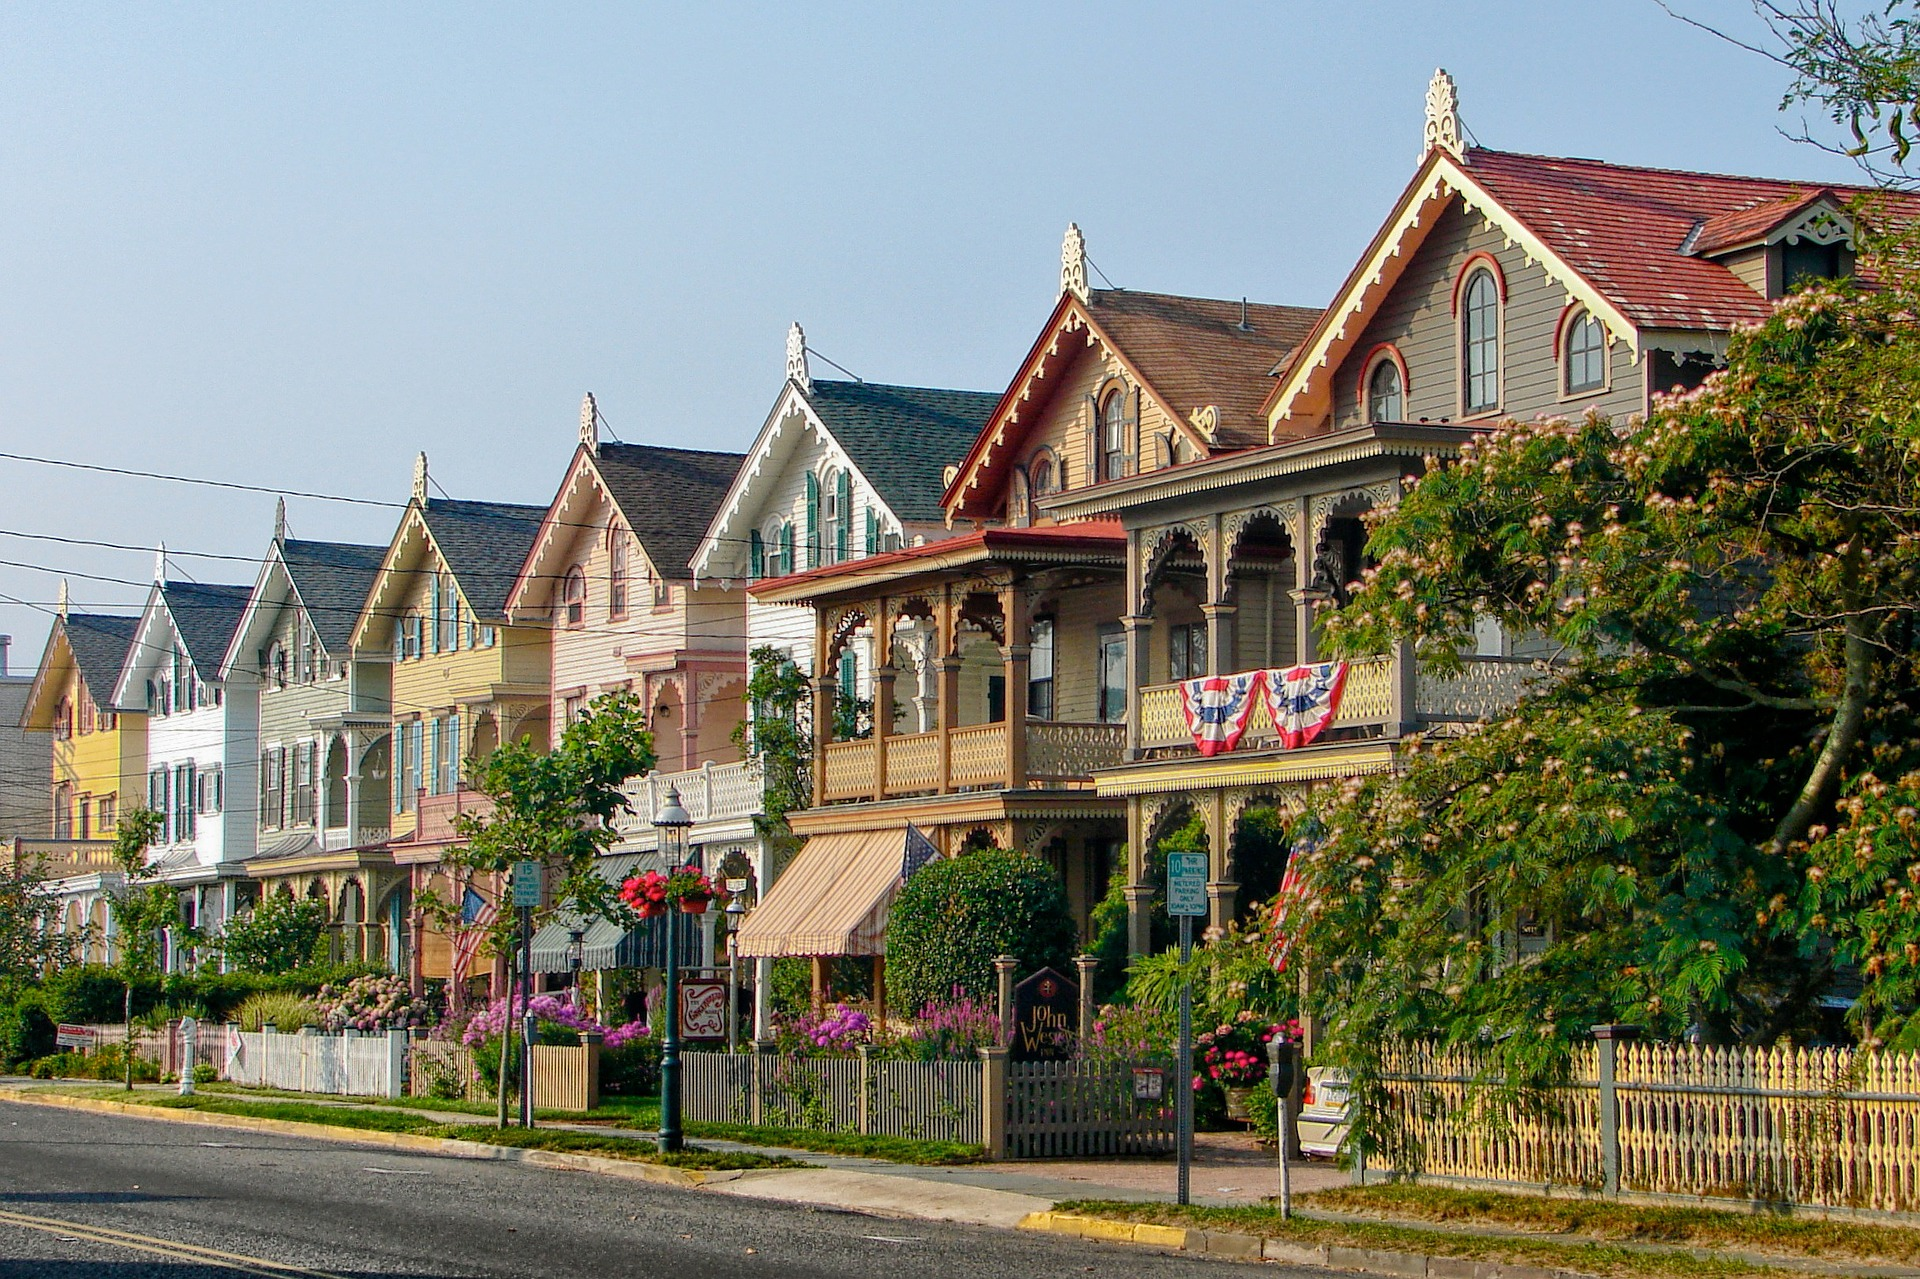 Victorian Houses in Cape May